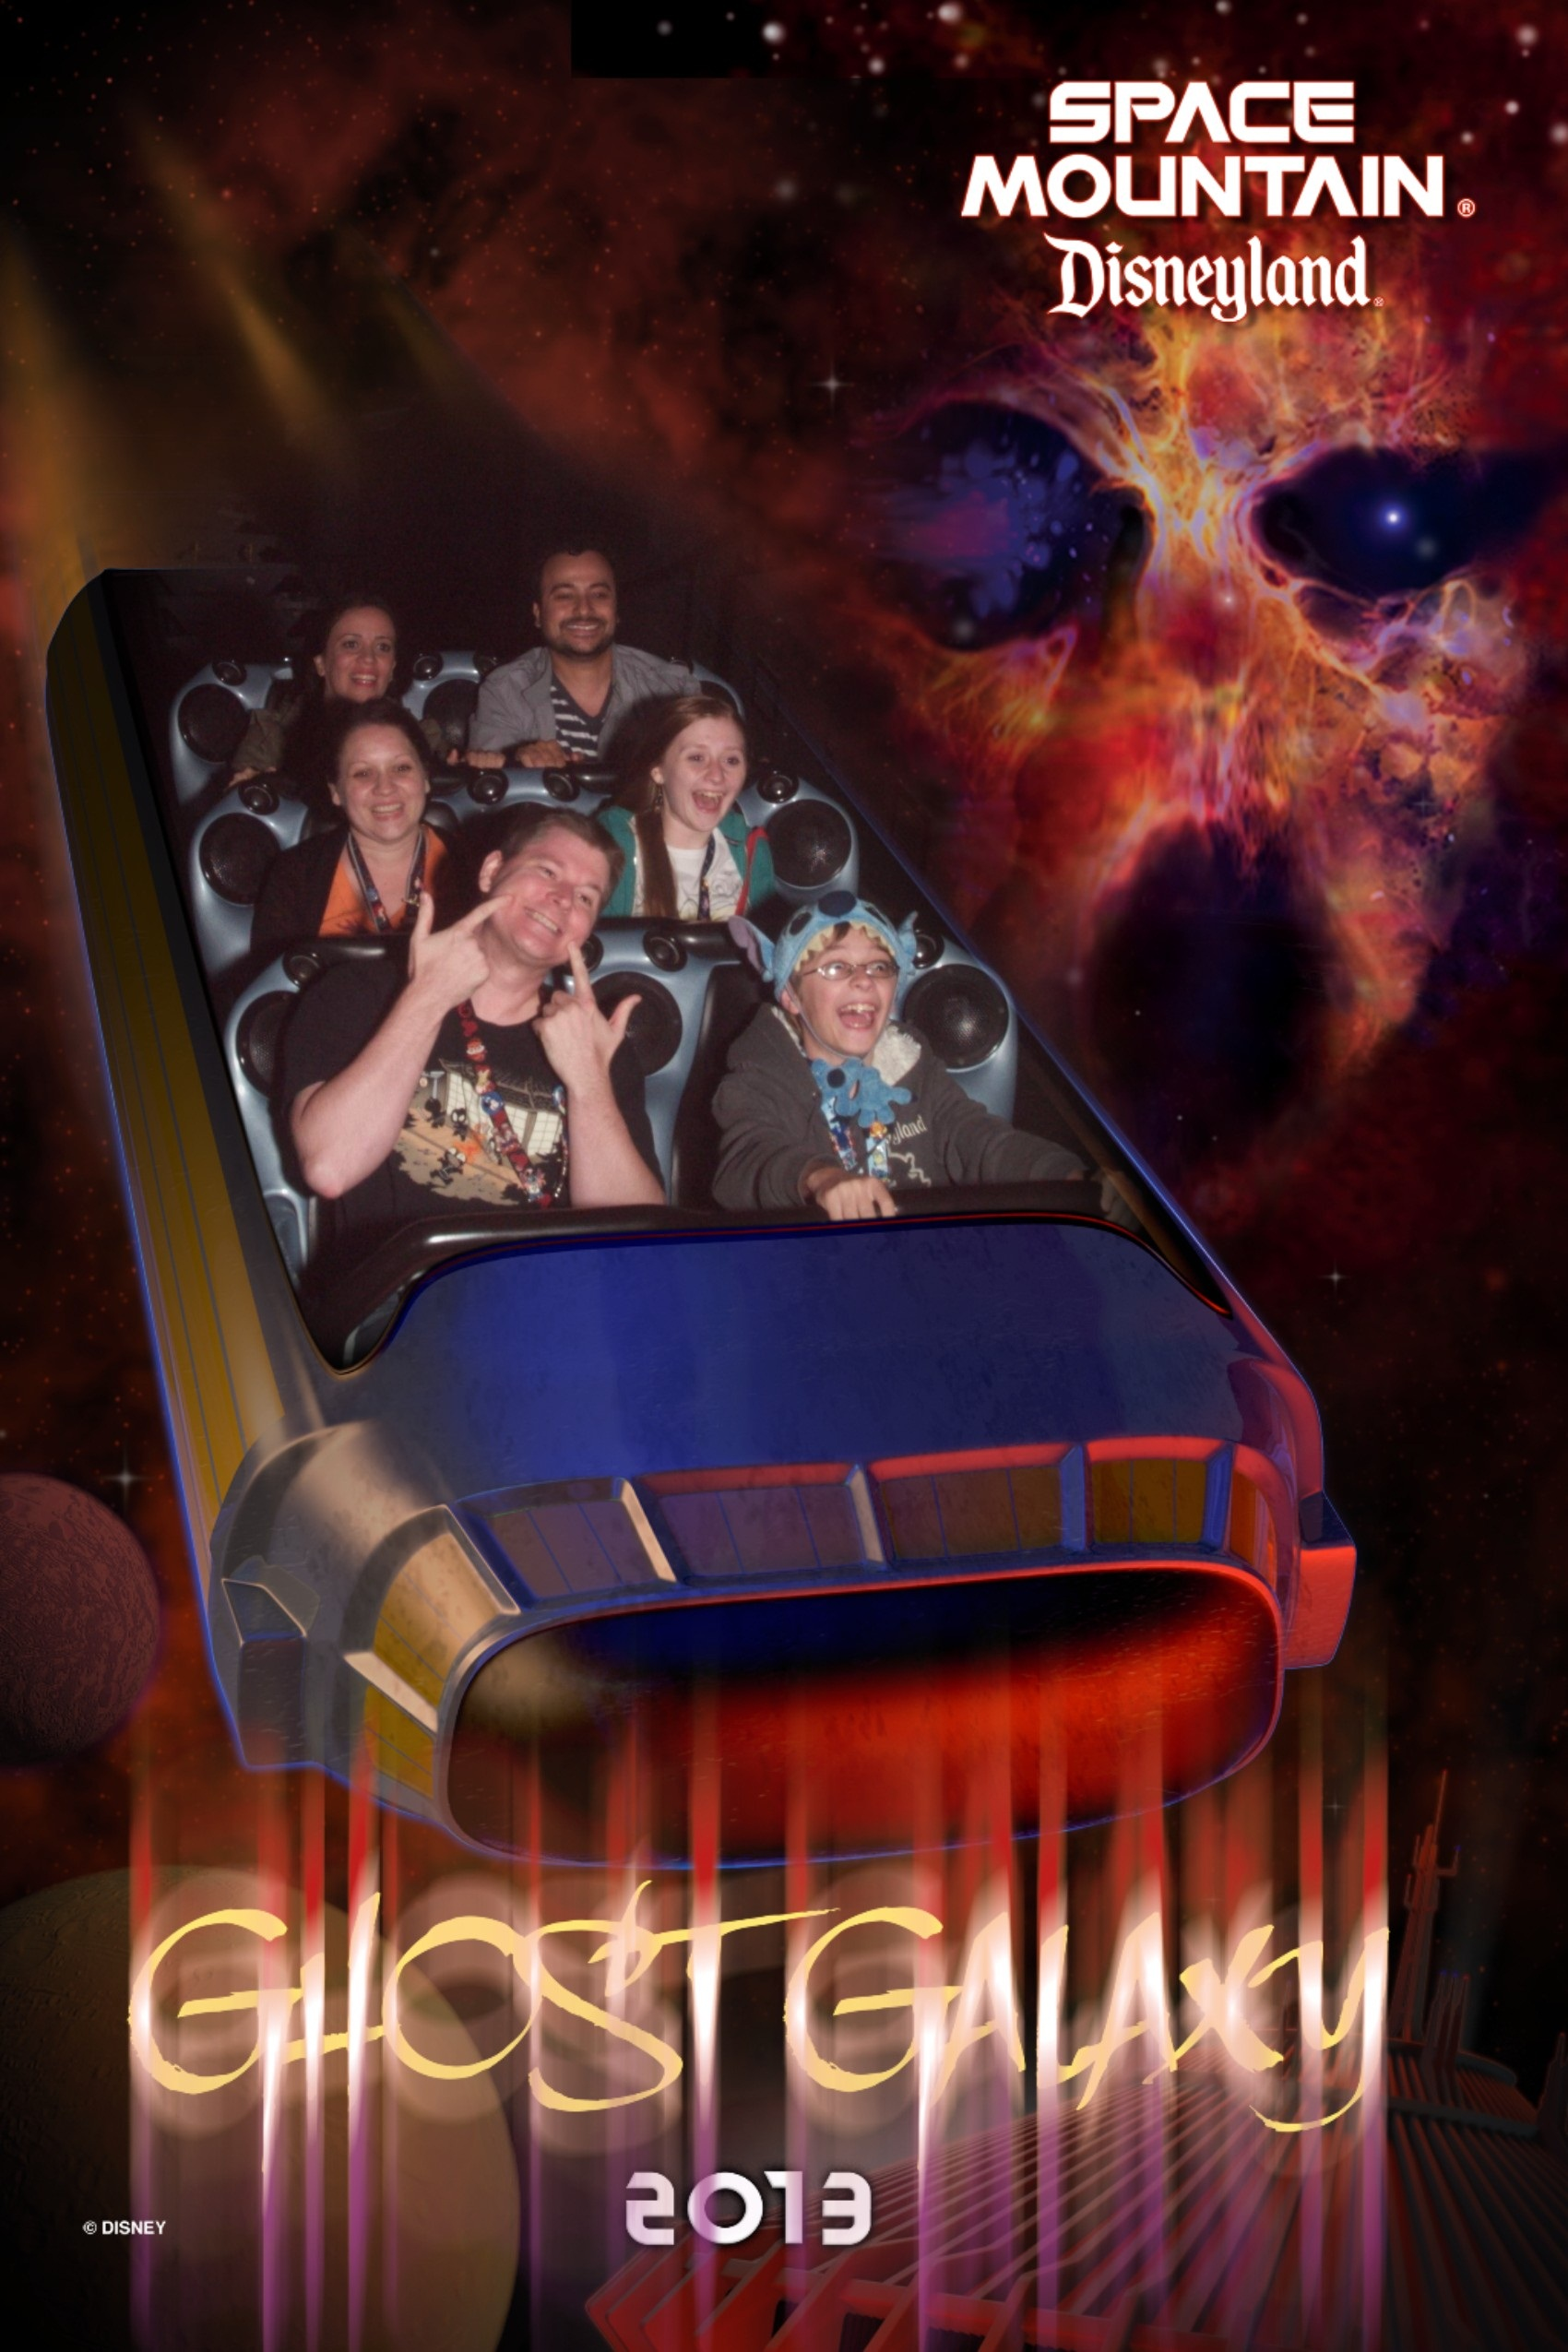 Disneyland S Space Mountain Gets A Halloween Makeover Into Ghost Galaxy Tips From The Disney